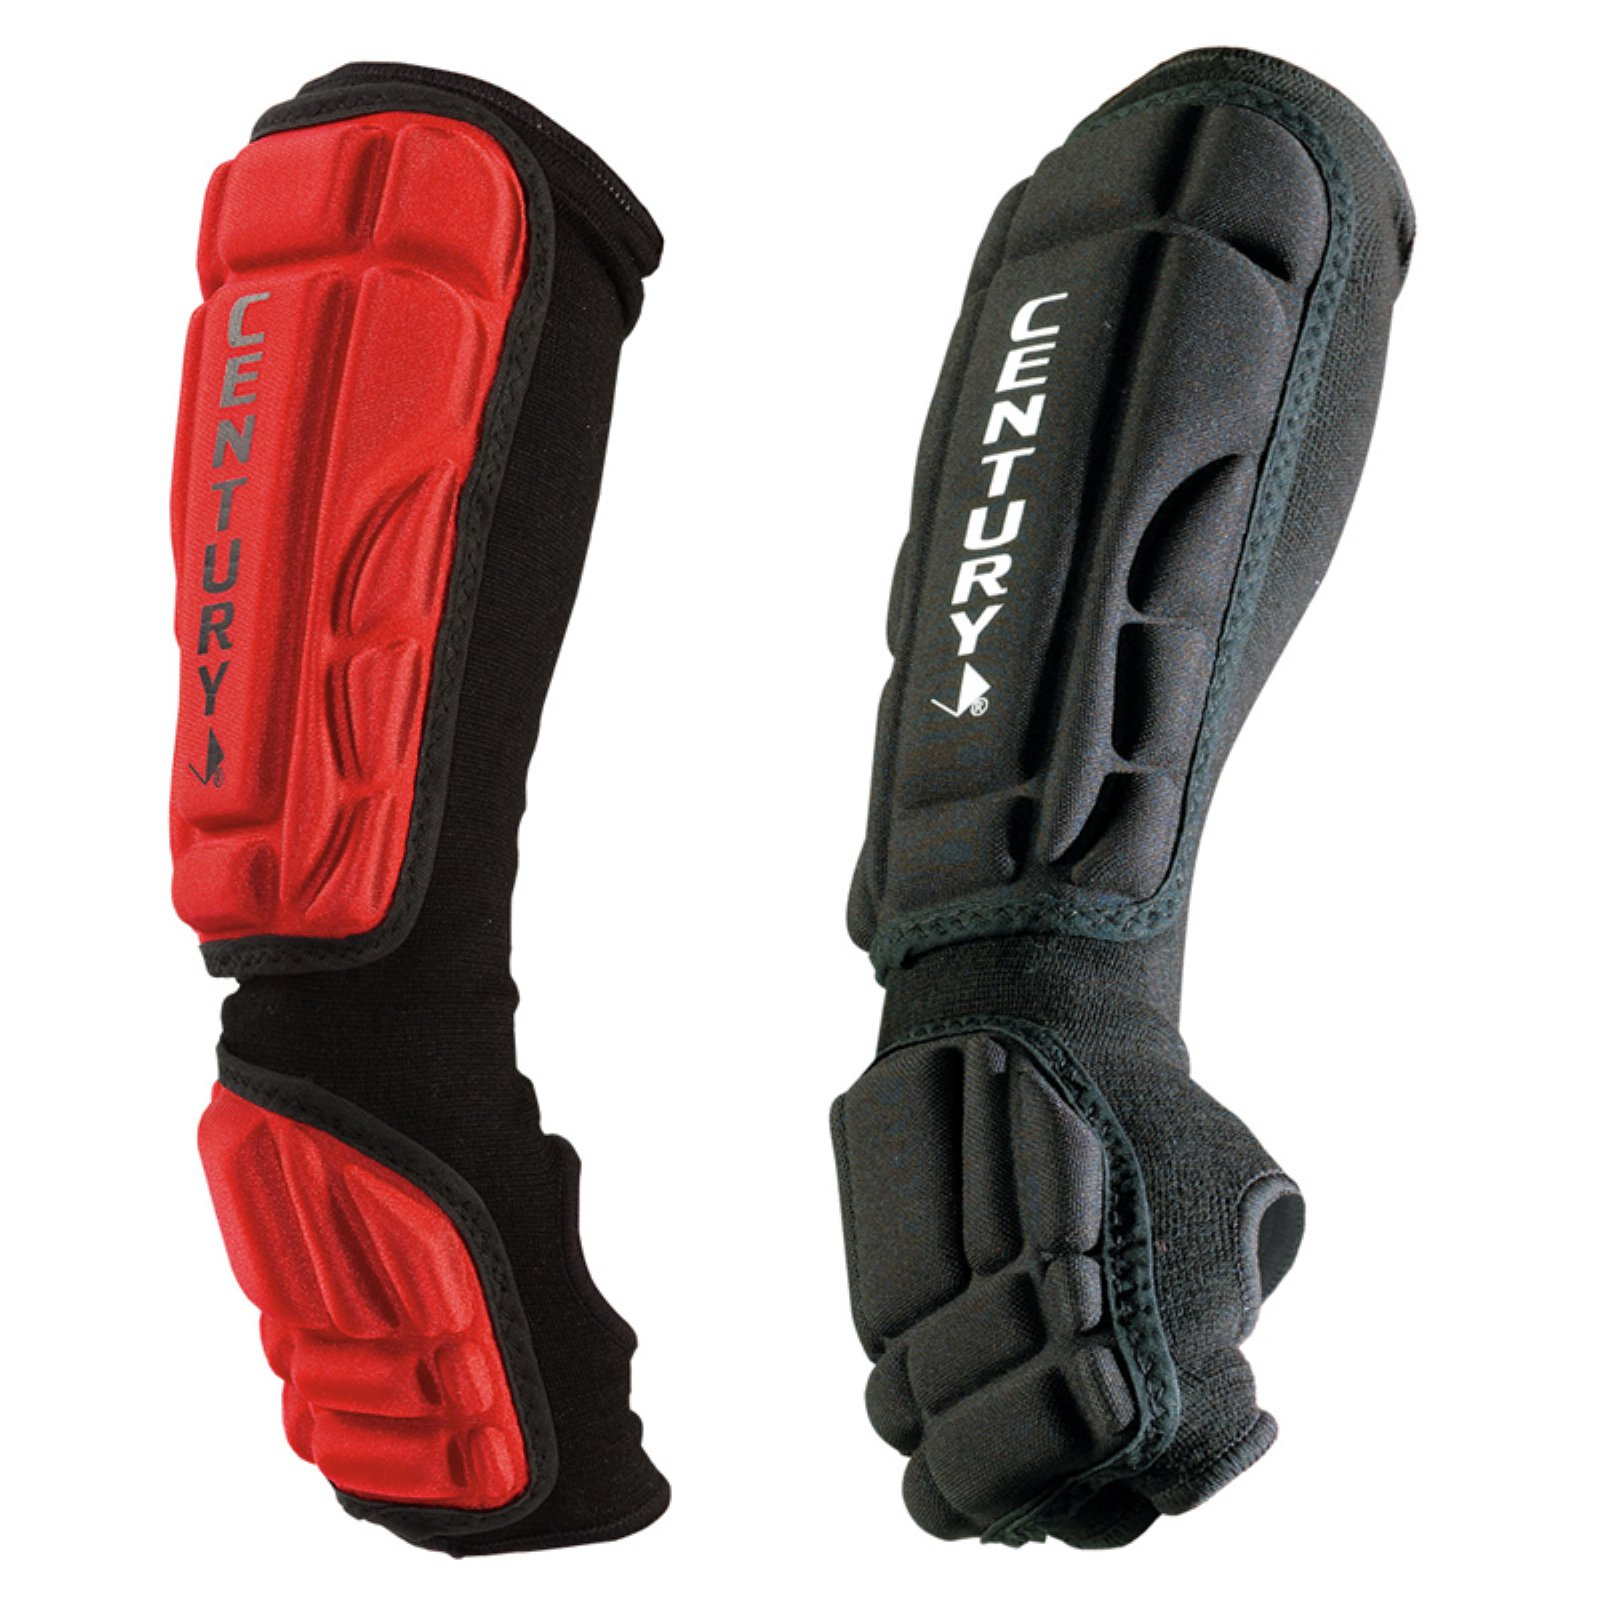 Century Hand Forearm Guards Black Large